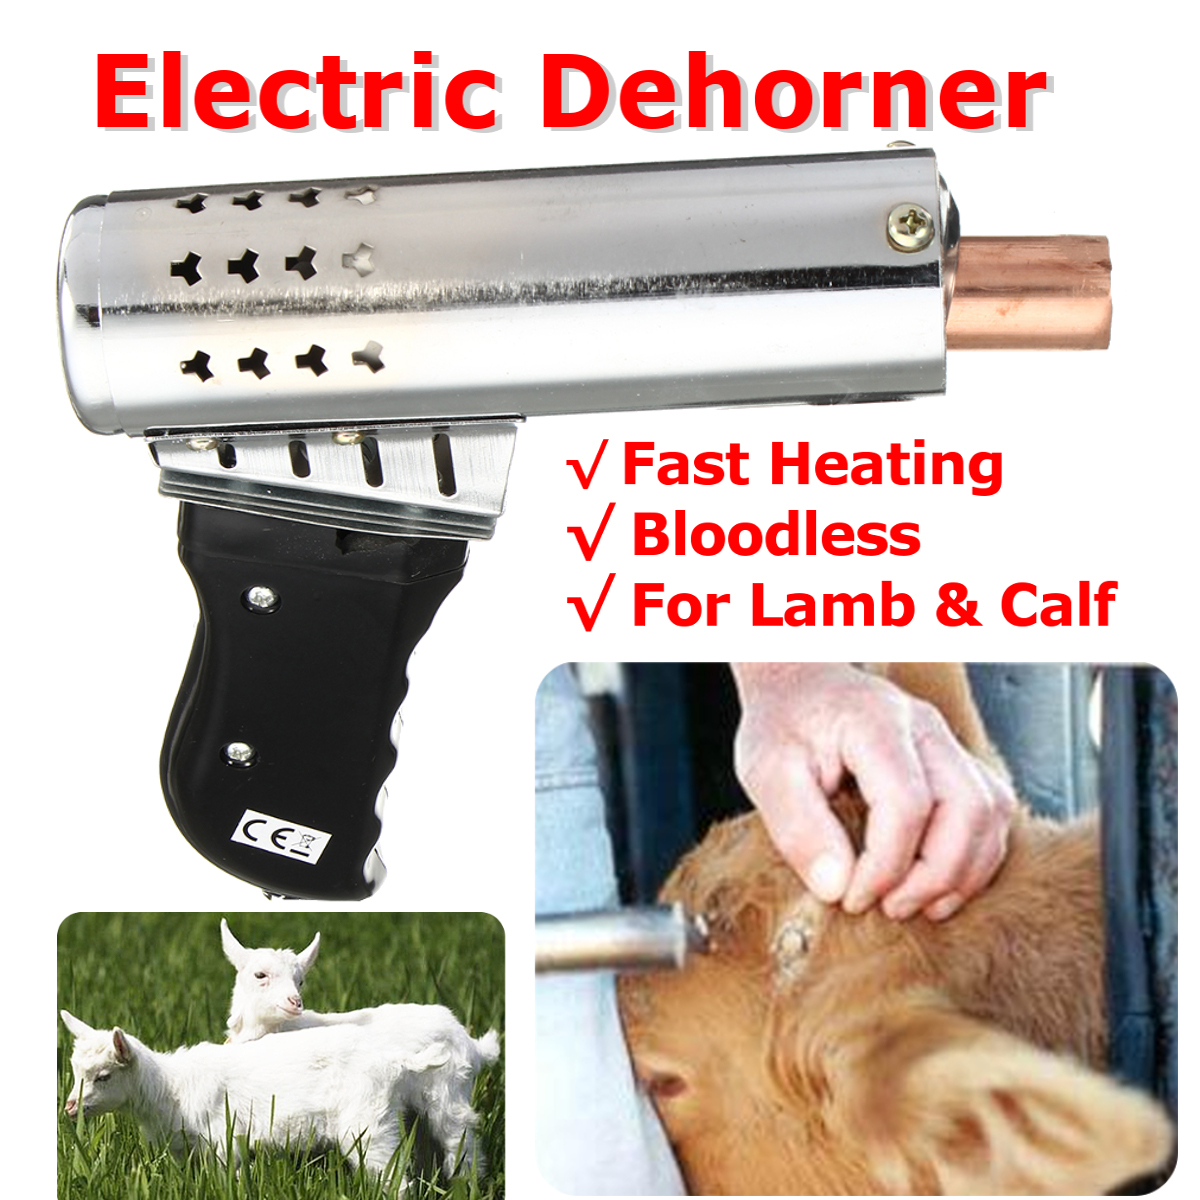 220V 500W Electric Dehorner Cattle Head Dehorner Calf Chamfer Electric Iron Bloodless Calf Lamb